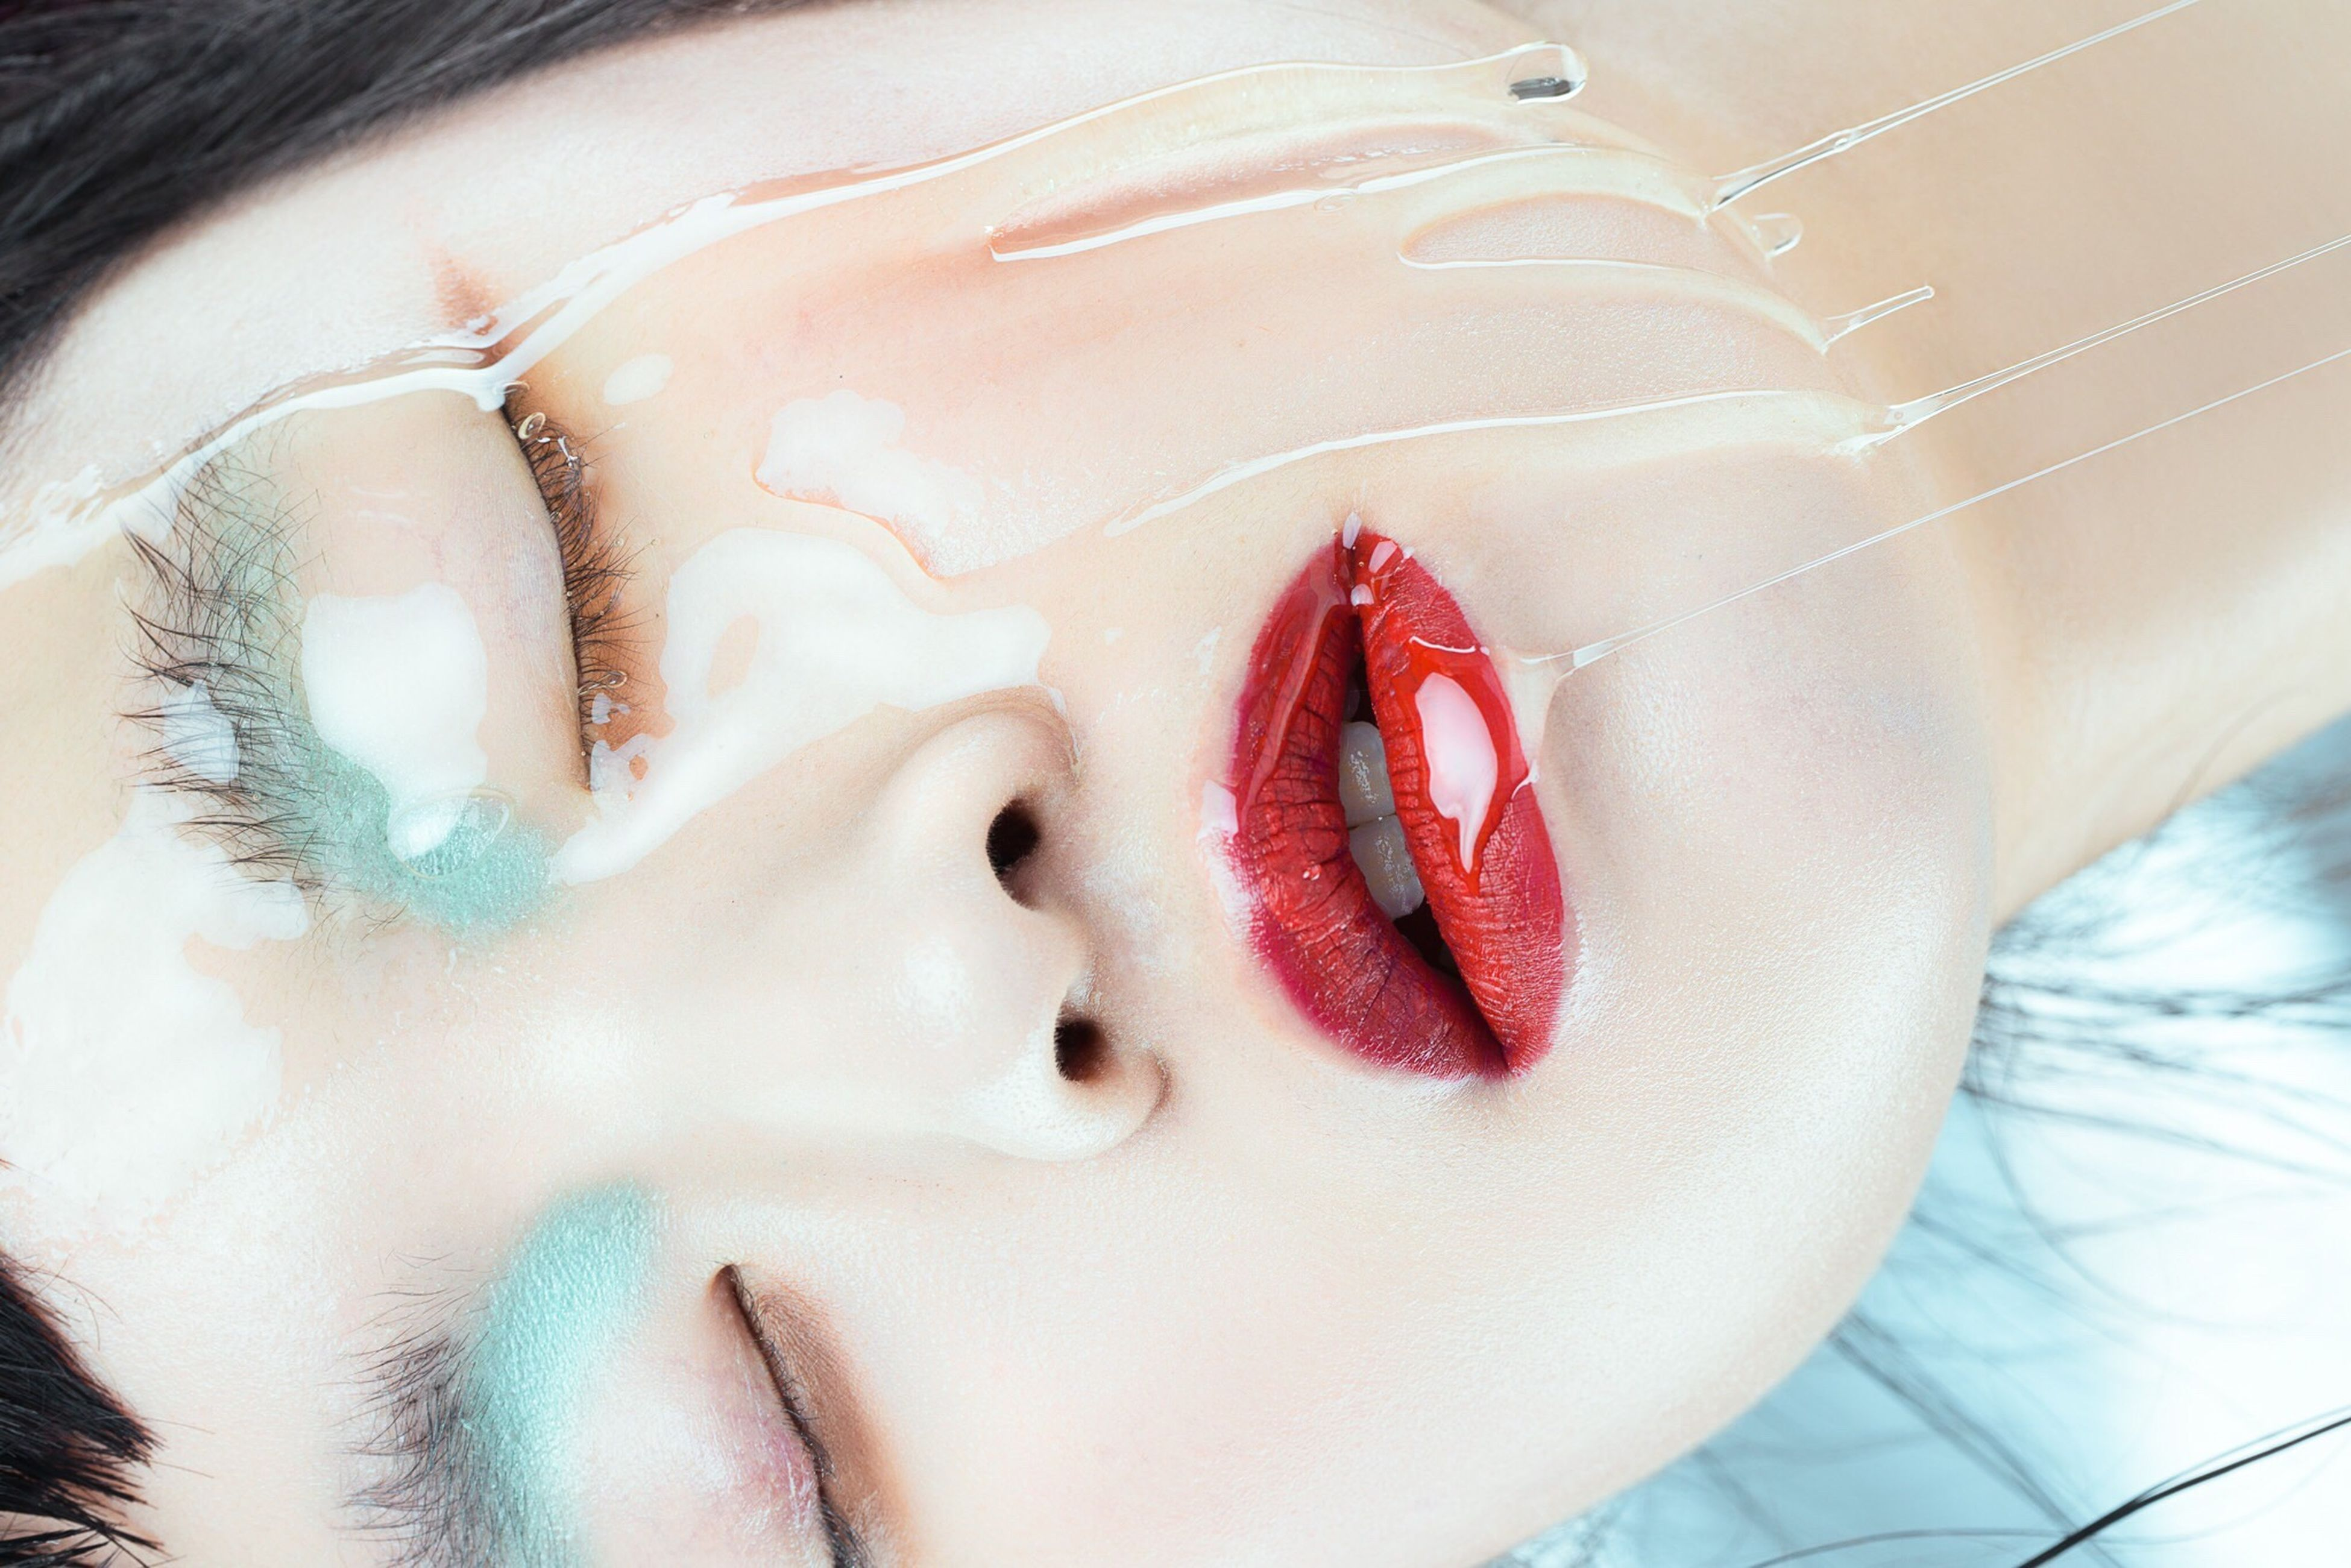 close-up, human body part, red, hygiene, indoors, beauty, young adult, people, freshness, one person, human lips, adult, adults only, day